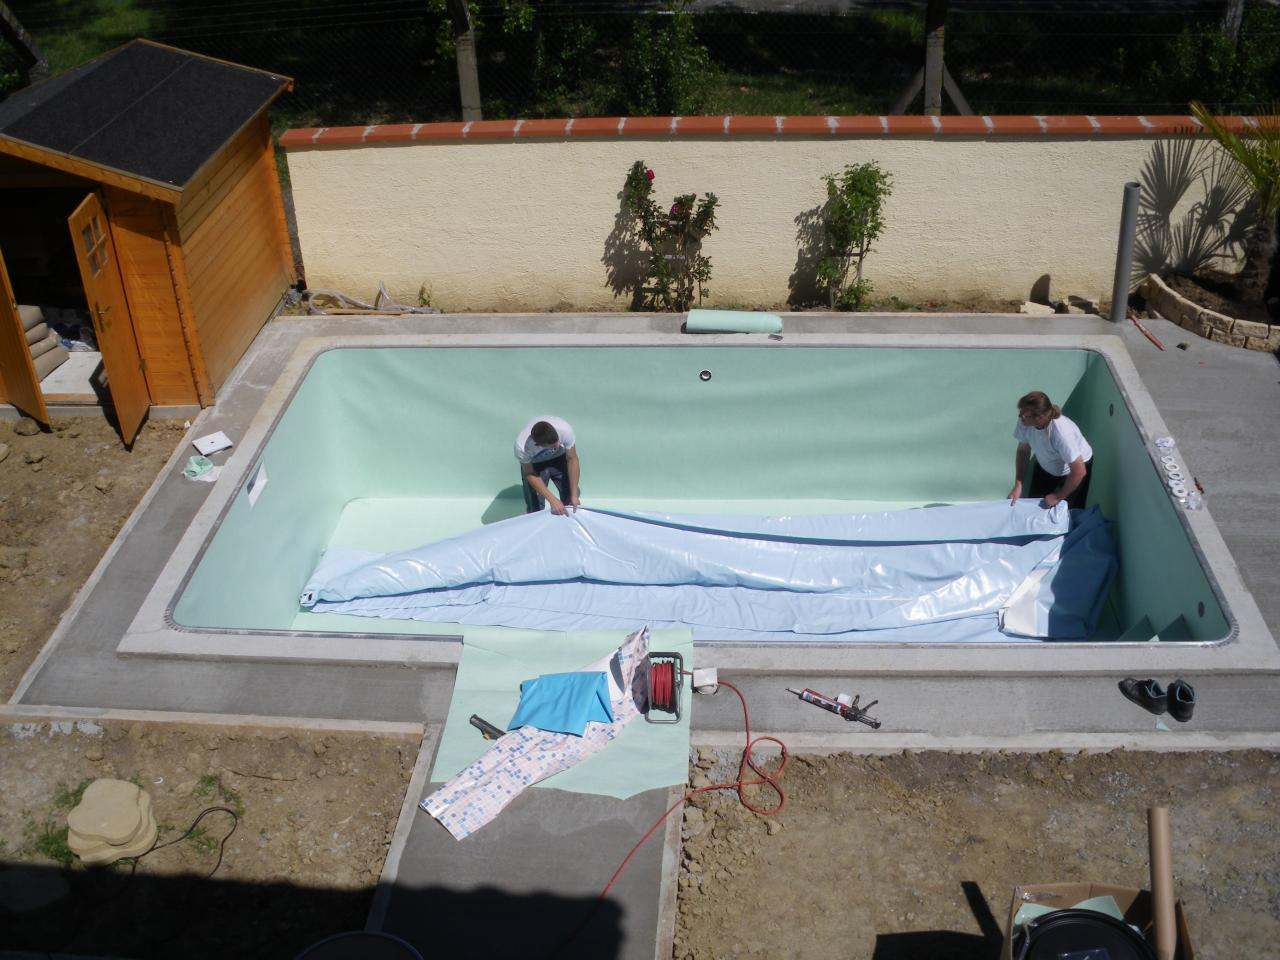 Piscine guide choix de solution co t et devis en ligne for Pose piscine bois semi enterree